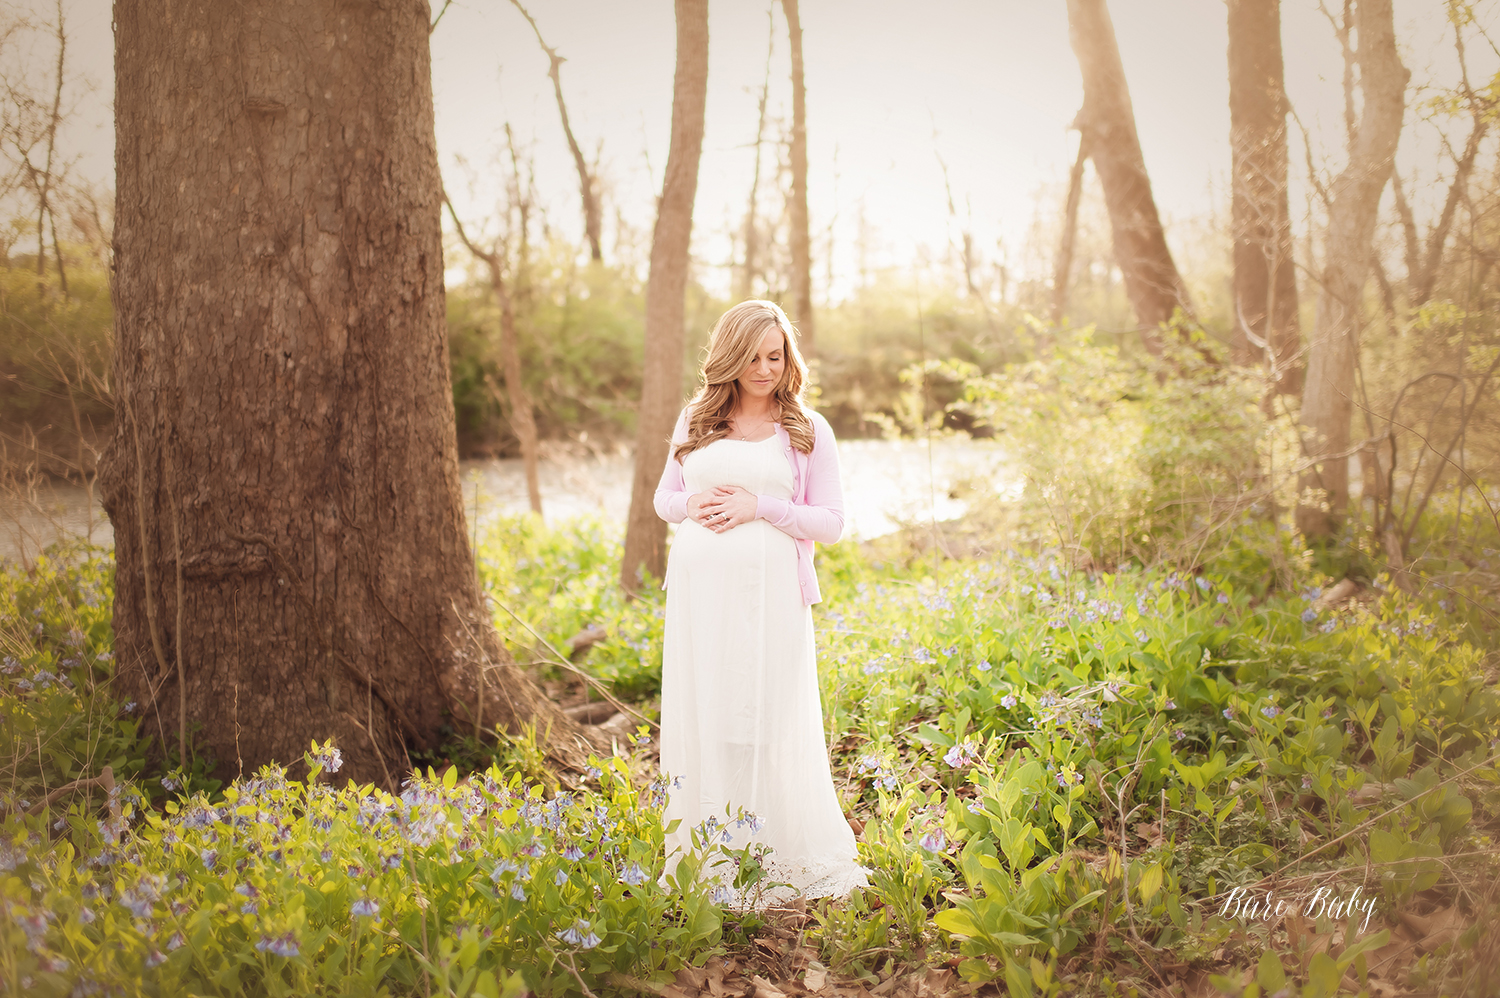 maternity-photographer-columbus.jpg